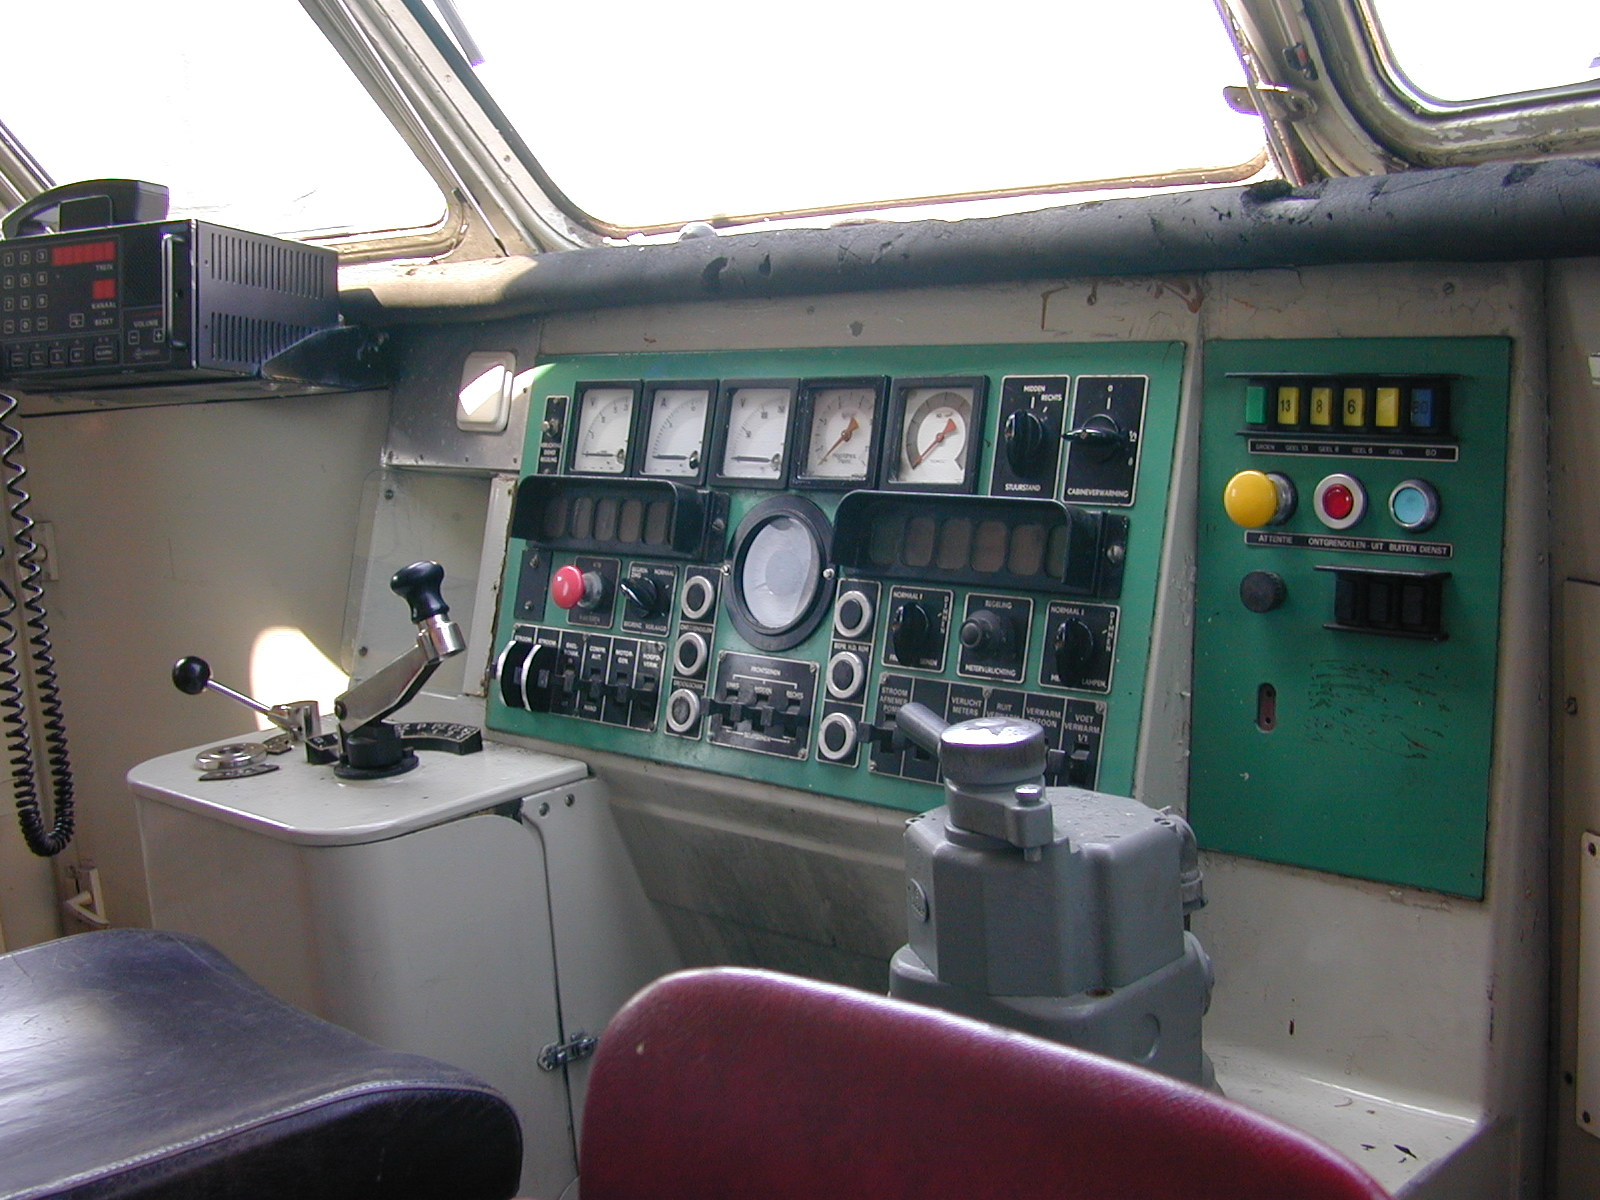 train cockpit dashboard gauge gauges switch switches lever levers radio button buttons